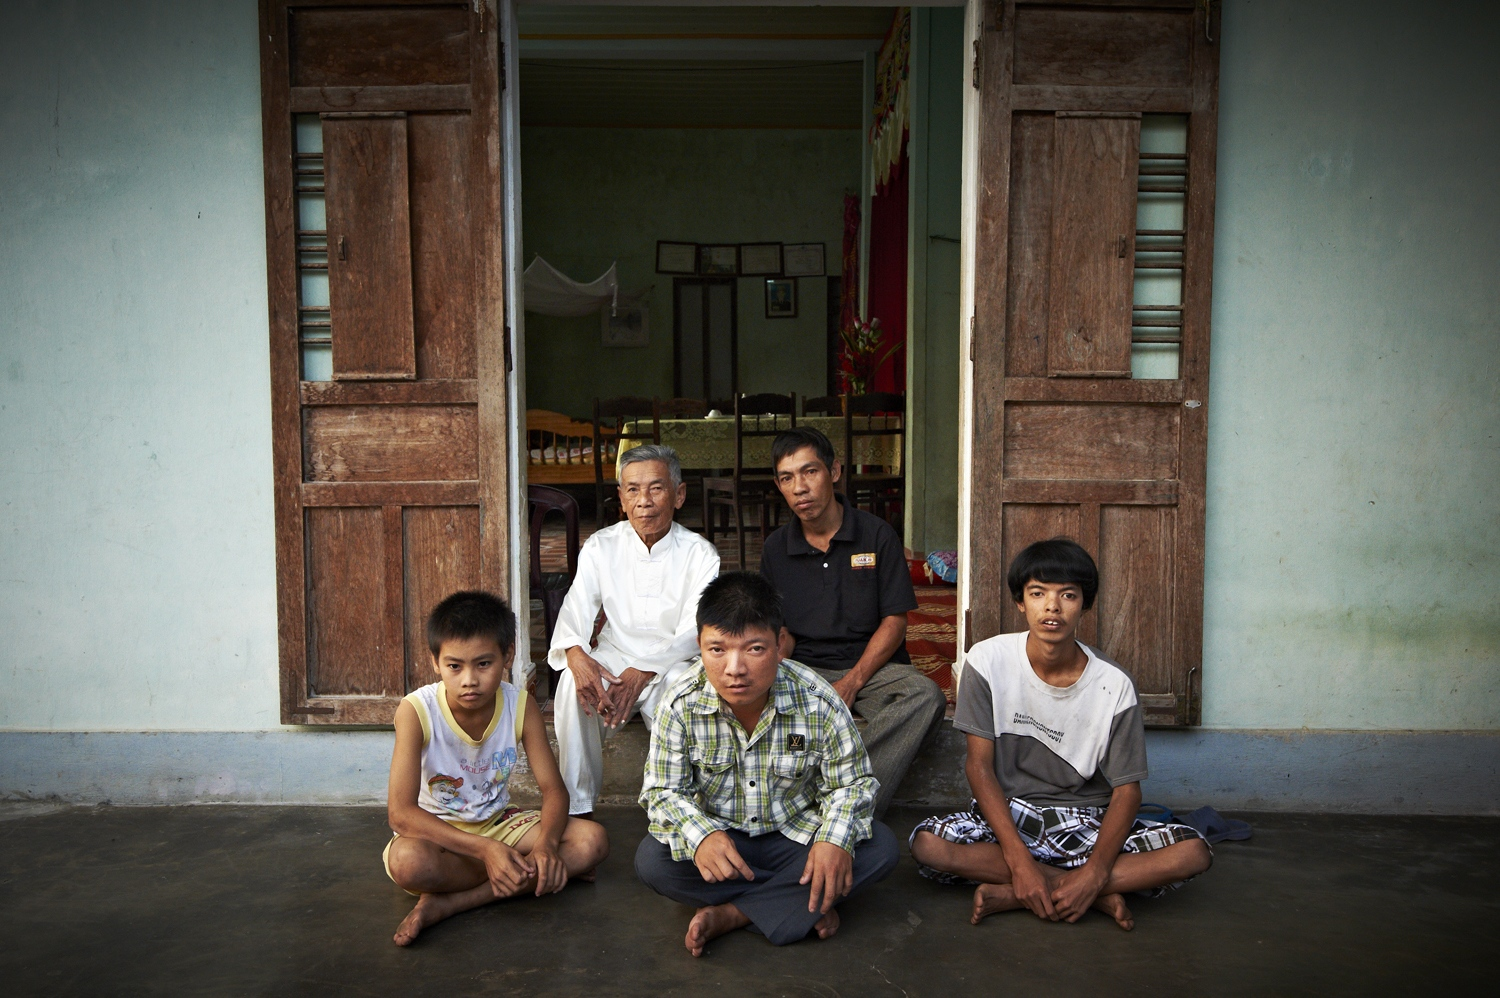 At a quick glance, they seem to be like any other families. But look closely and you will realize that there are three generations of victims of the Agent Orange in the family. The man dressed in white is the grandfather, Hoang Thang (Male, born in 1929), who got hit by the chemical in Hai Lang forest and to this day suffers from serious skin diseases and nervous system illnesses. His son, Hoang Van Danh (Male, born in 1977, top row on the right), has epilepsy with his right leg paralyzed, while his son, Hoang Anh Son (Male, born in 1983, eldest son's son), is mentally challenged with paralysis on his right leg and foot. Second son's son, Hoang Anh Duc (Male, born in 1994) is hearing impaired and mute. Lastly, third son's son, Hoang Quang Tuong (Male, born in 2002) has epilepsy. The pain and sufferings inflicted by the Agent Orange, most unfortunately, are passed on from one generation to the next. (Dec. 7, 2012)